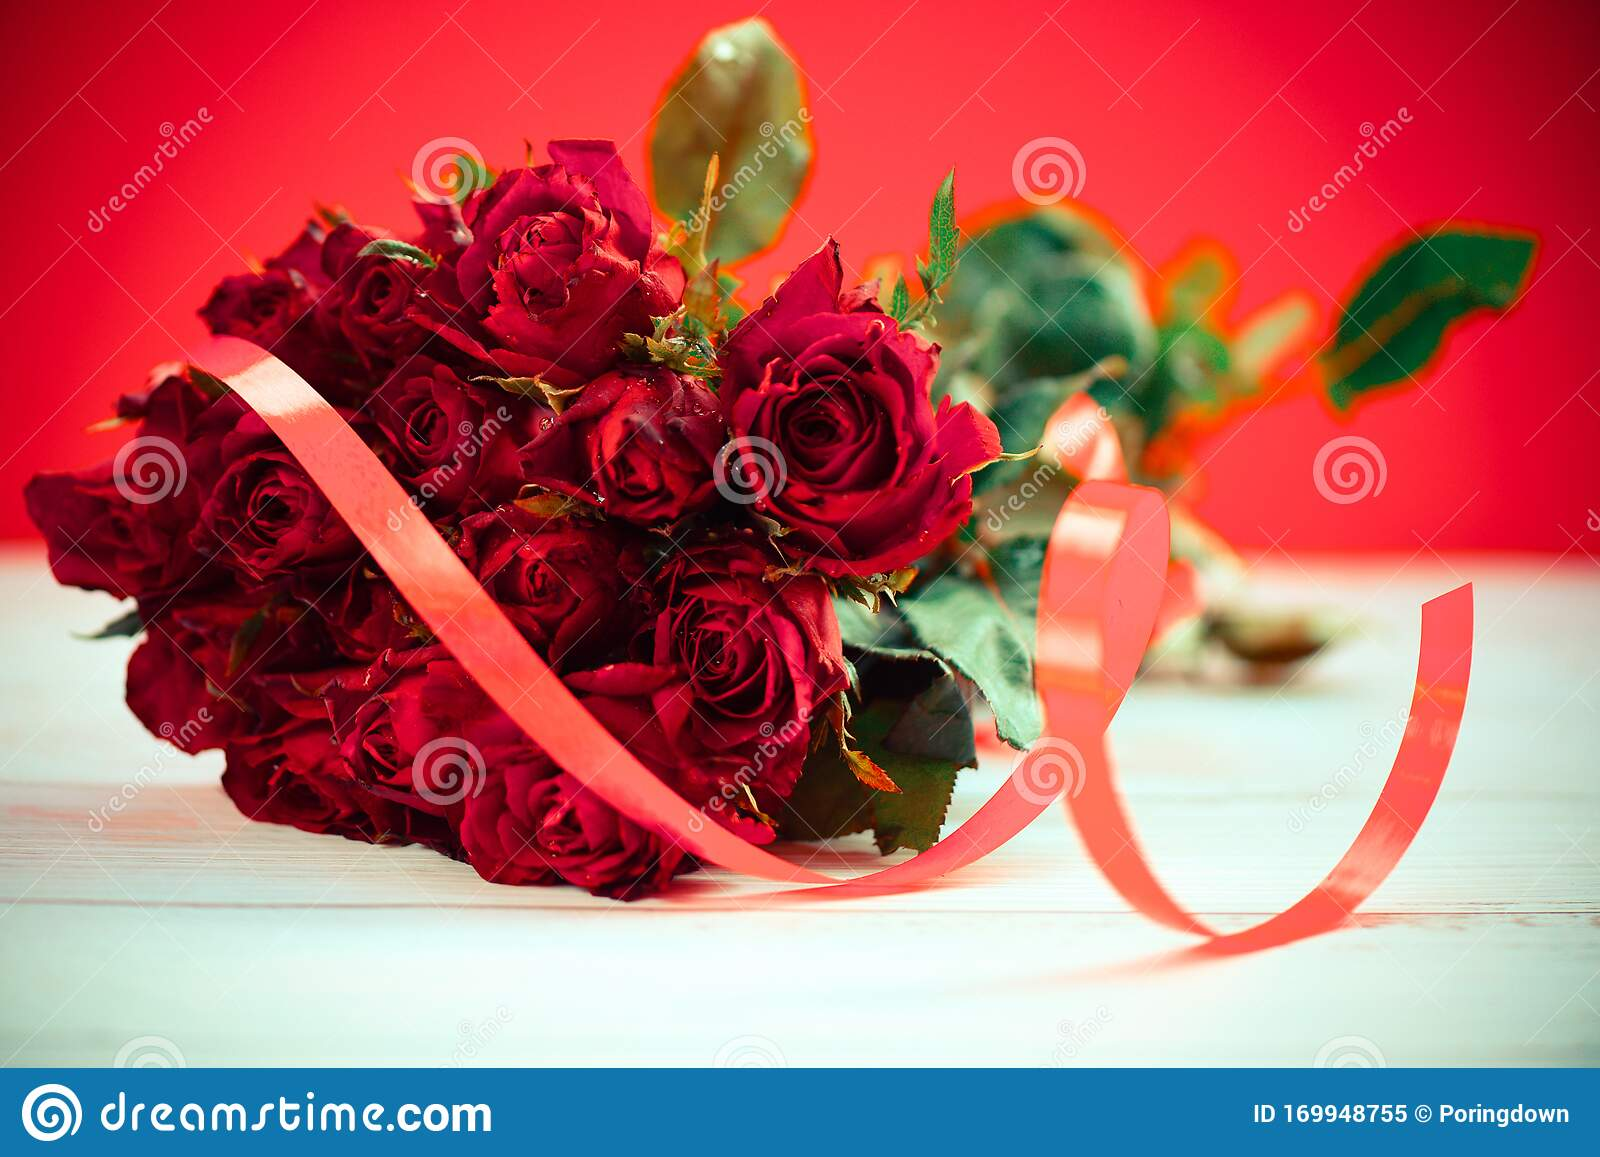 Natural Fresh Red Roses Flower Bouquet With Ribbon Close Up Rose Background Flowers Romantic Love Valentine Day Concept Stock Image Image Of Marriage Beautiful 169948755